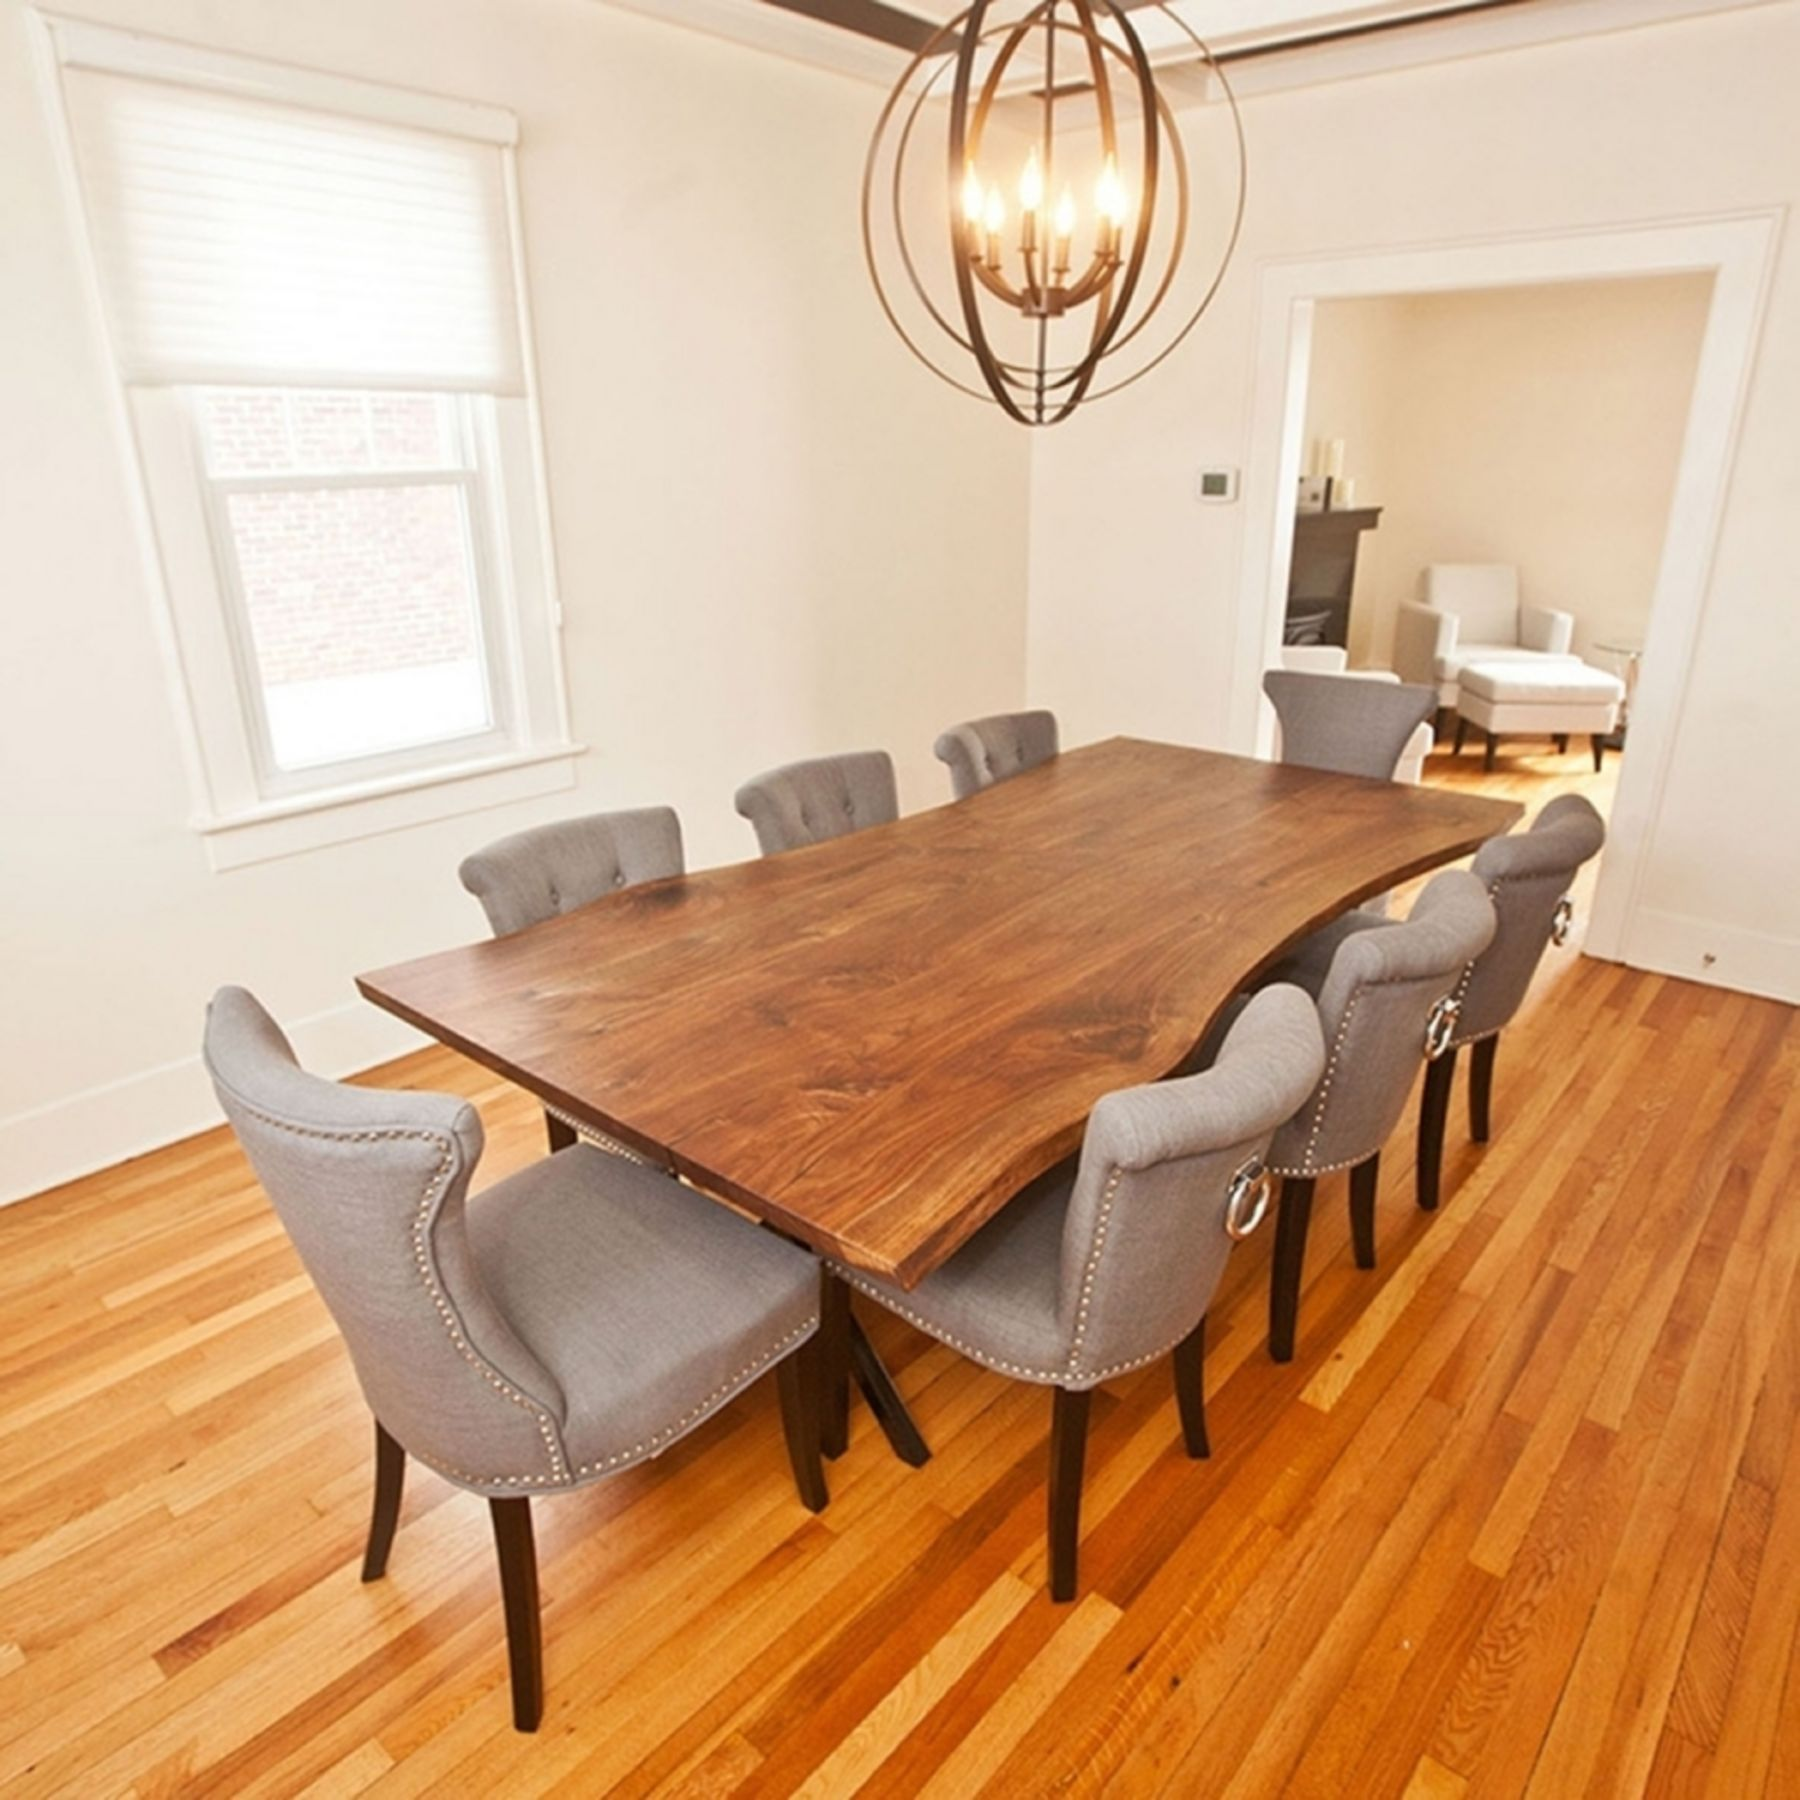 Top 12 Creative Dining Table Design Ideas To Make Your ...